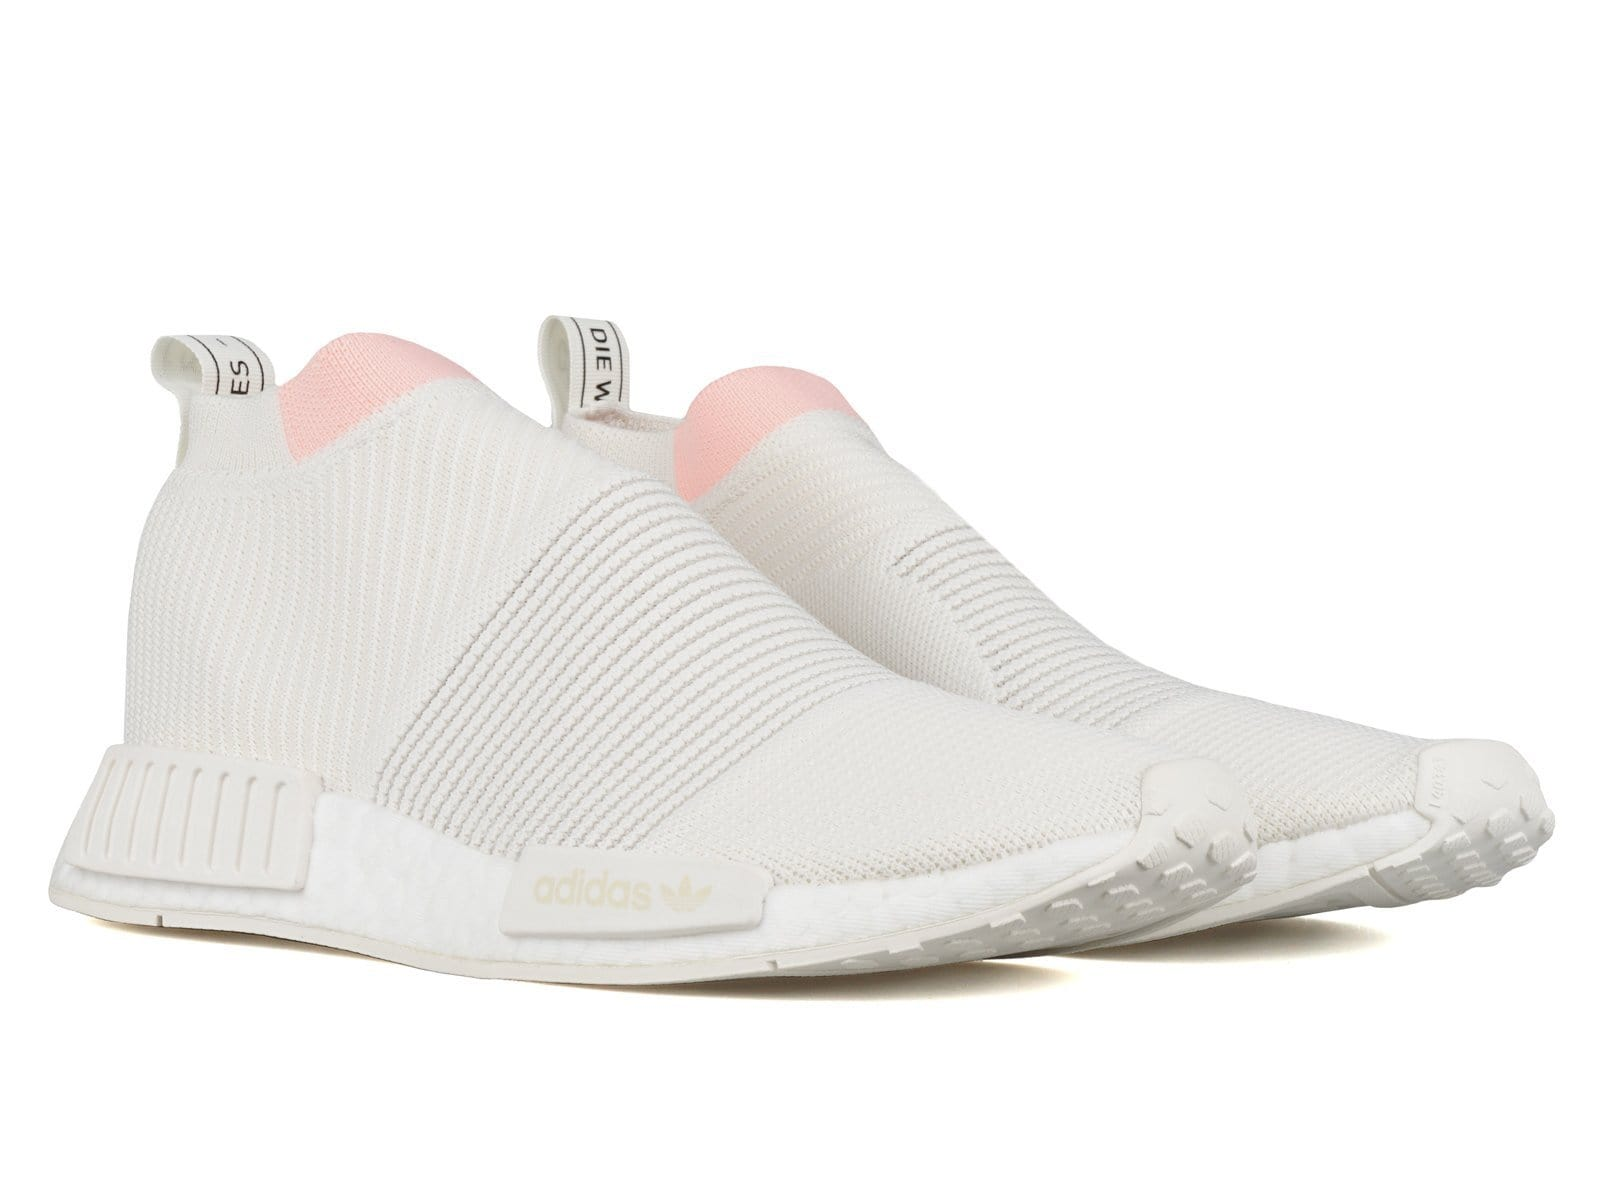 a55c070a4eb48 Women s NMD CS1 PK Running White Running White Clear Orange – Bodega